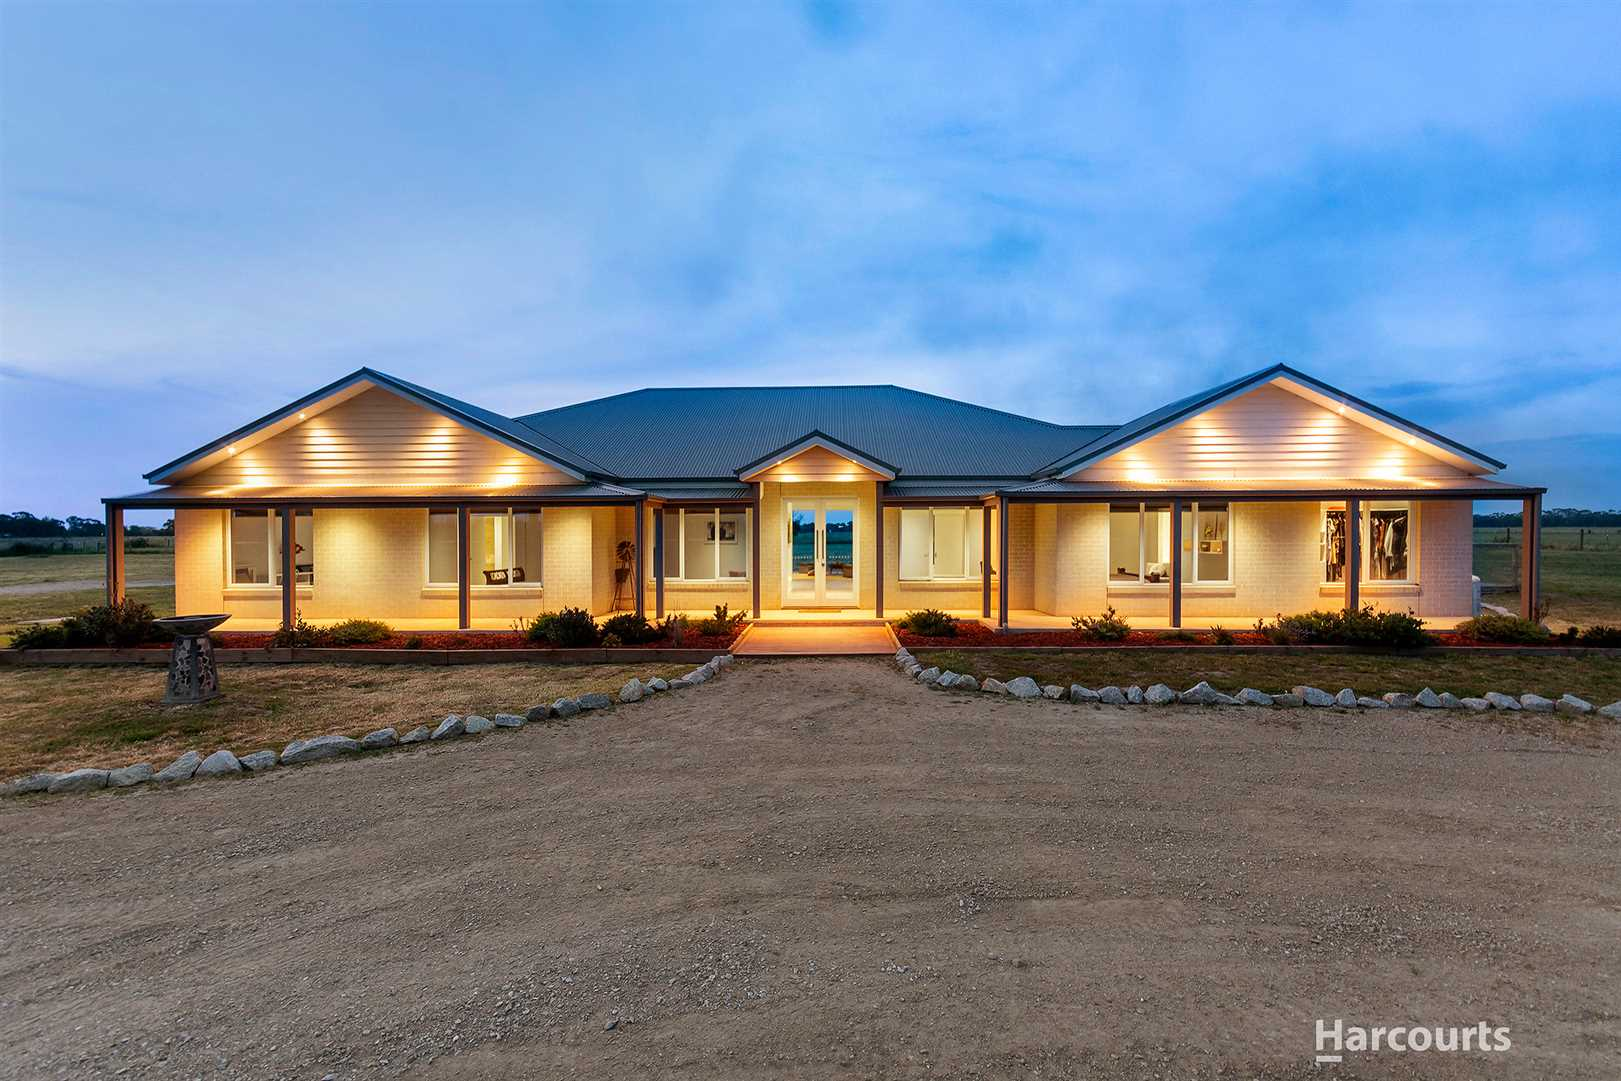 The dream home on 10 acres